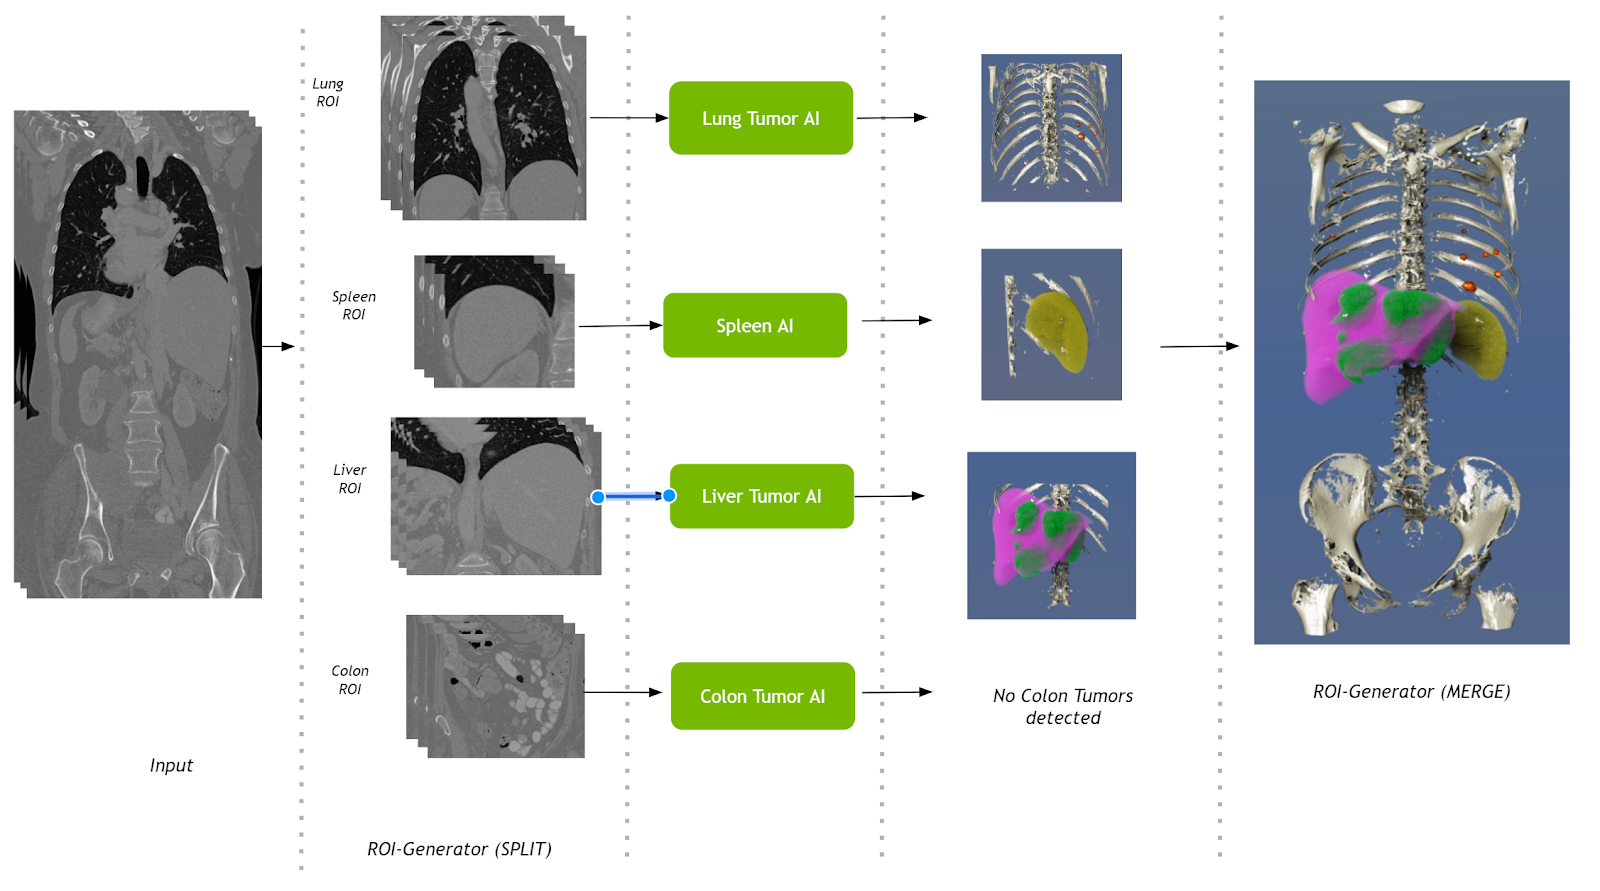 The Multi-organ AI pipeline takes a CT study, runs several organ segmentation algorithms including lung, spleen, liver, and colon, and combines the outputs into a single presentation using Clara Render Server.